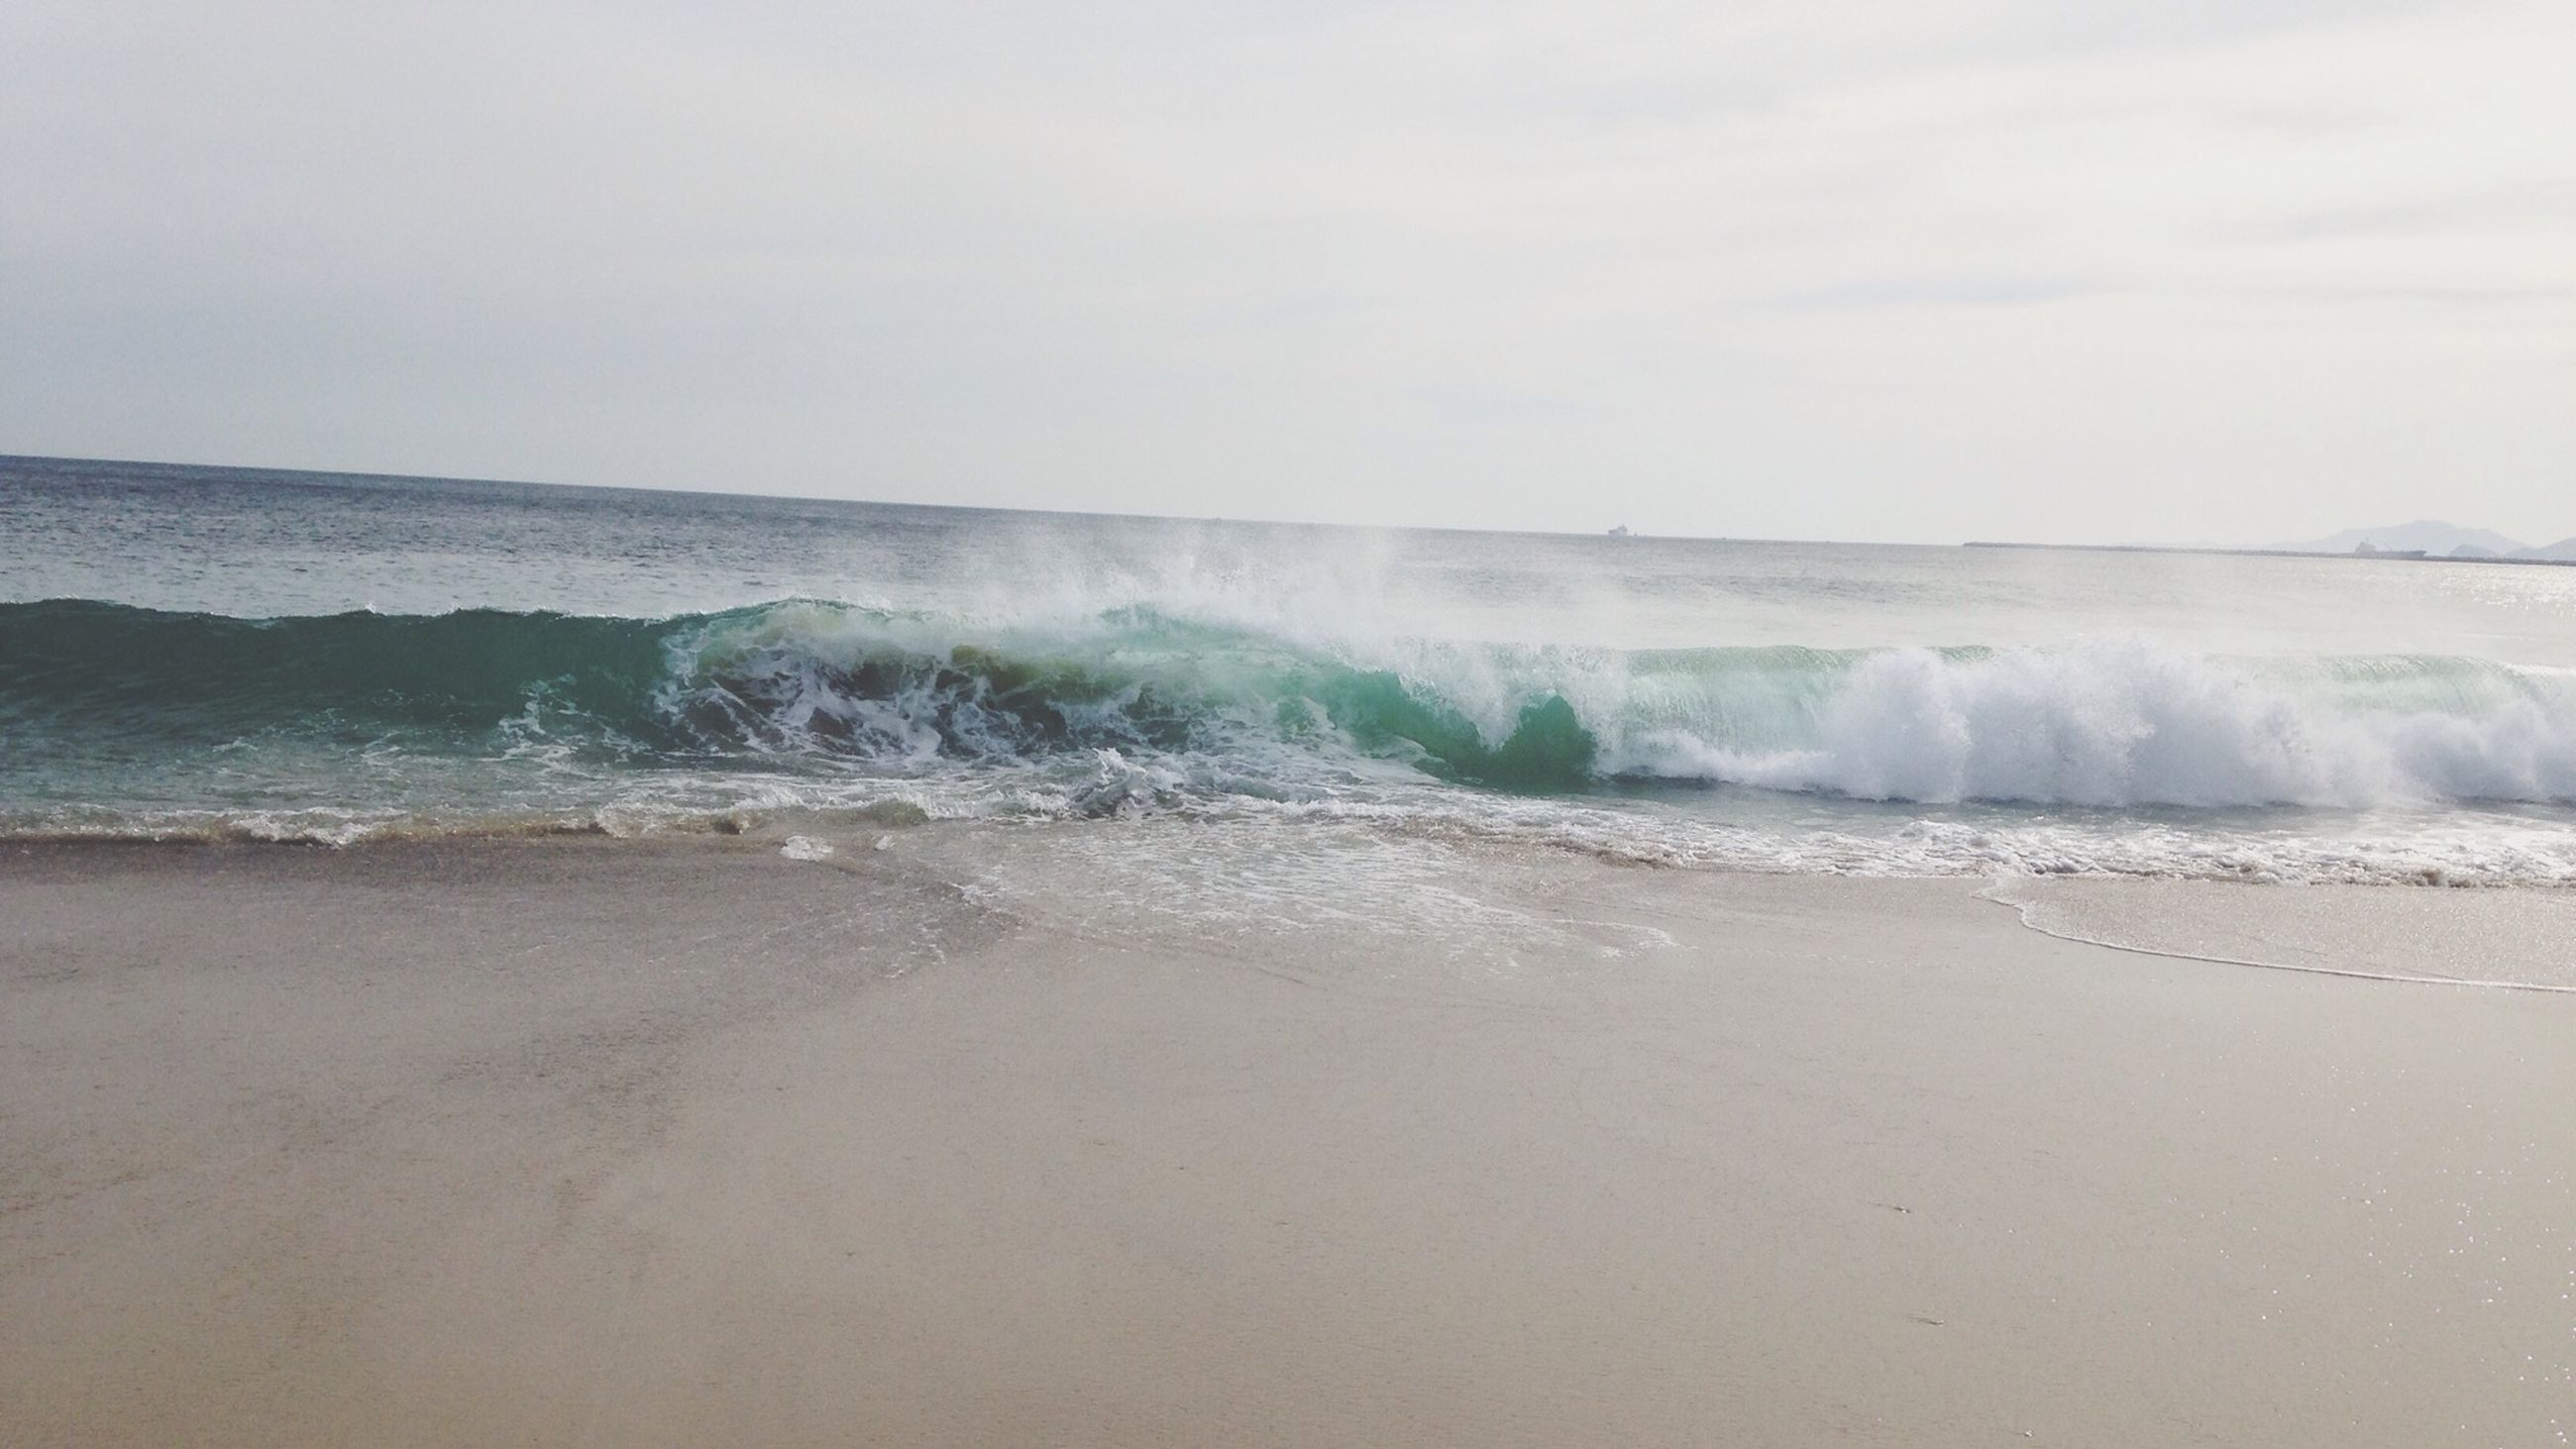 sea, beach, water, shore, wave, sand, horizon over water, surf, scenics, sky, beauty in nature, tranquil scene, nature, tranquility, motion, idyllic, coastline, remote, day, outdoors